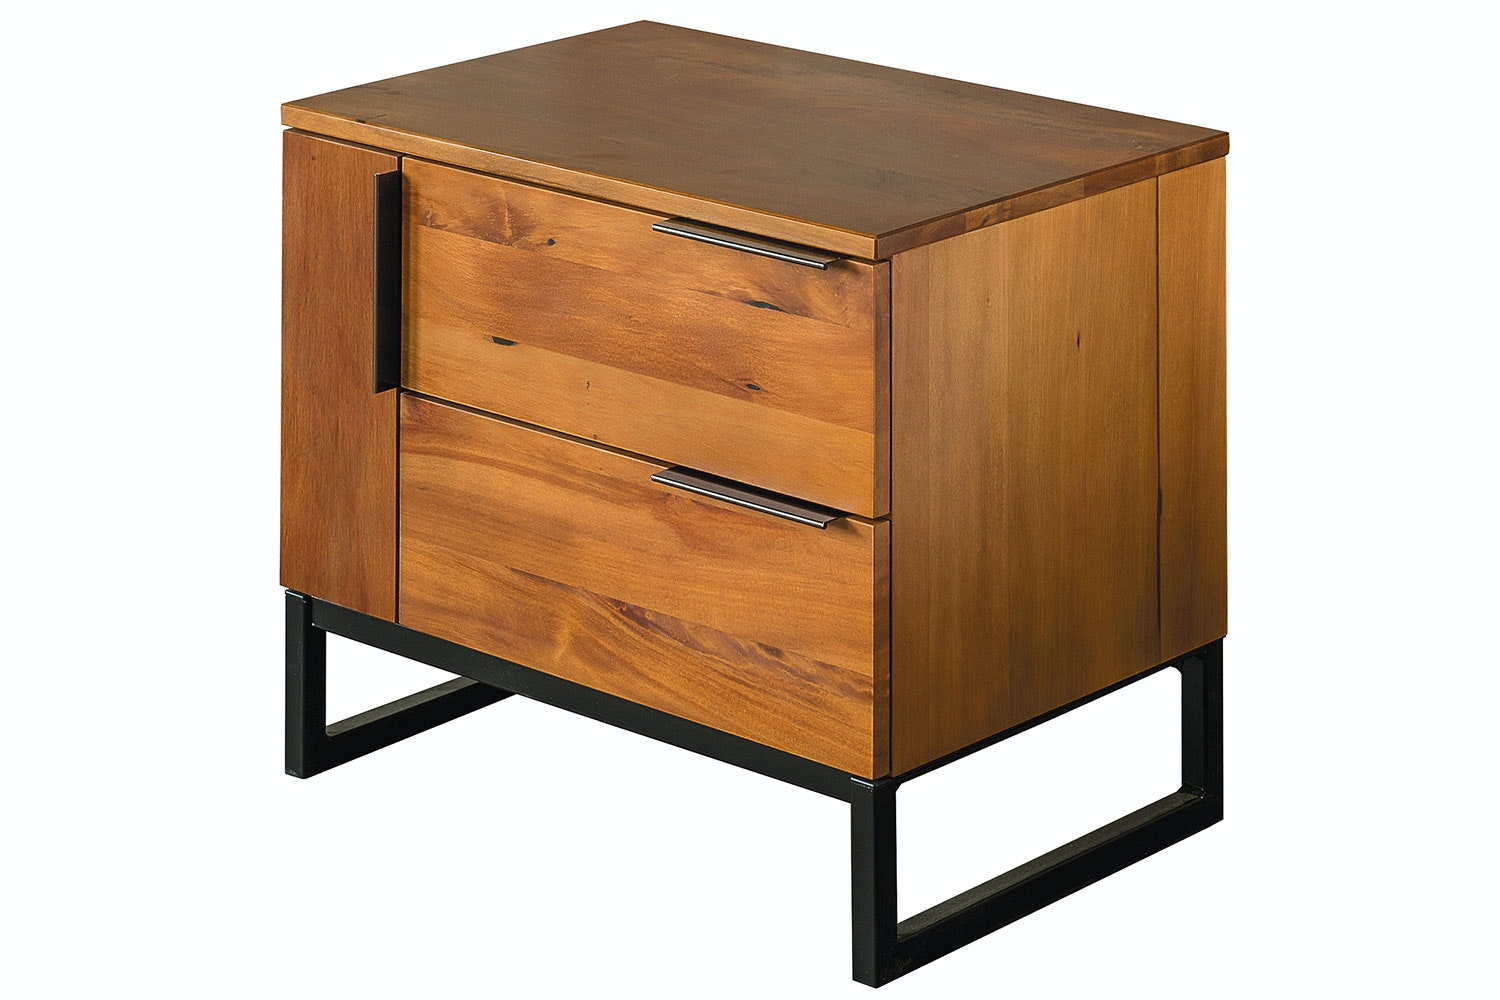 Matai Bay Bedside Table by Sorensen Furniture